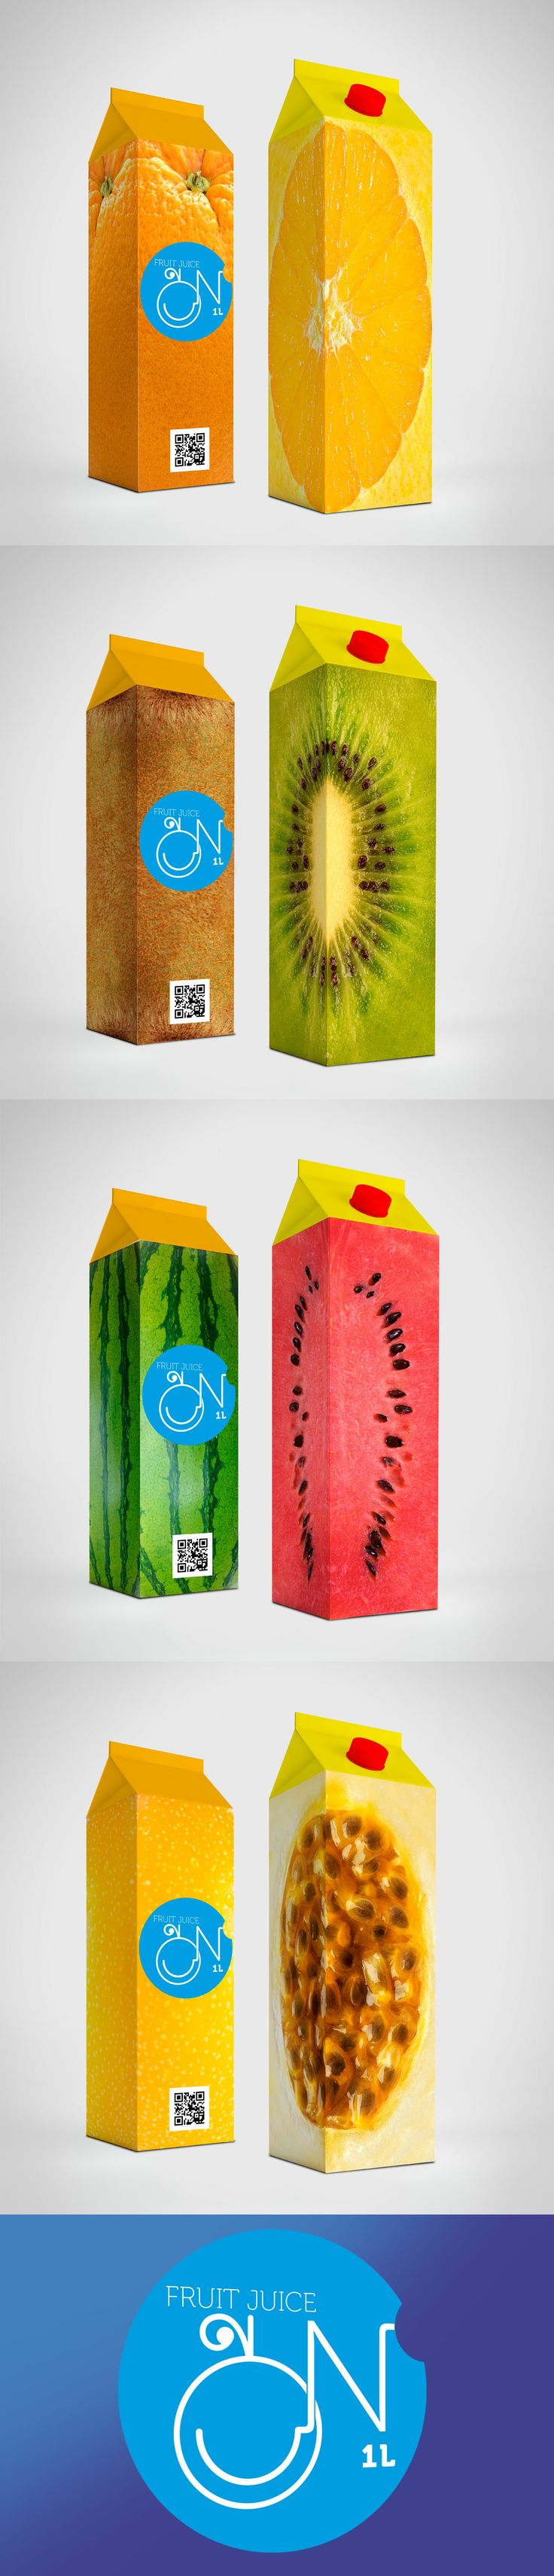 I like how these cartons are wrapped in fruit. Not only does it look really interesting but it also hints the flavor.